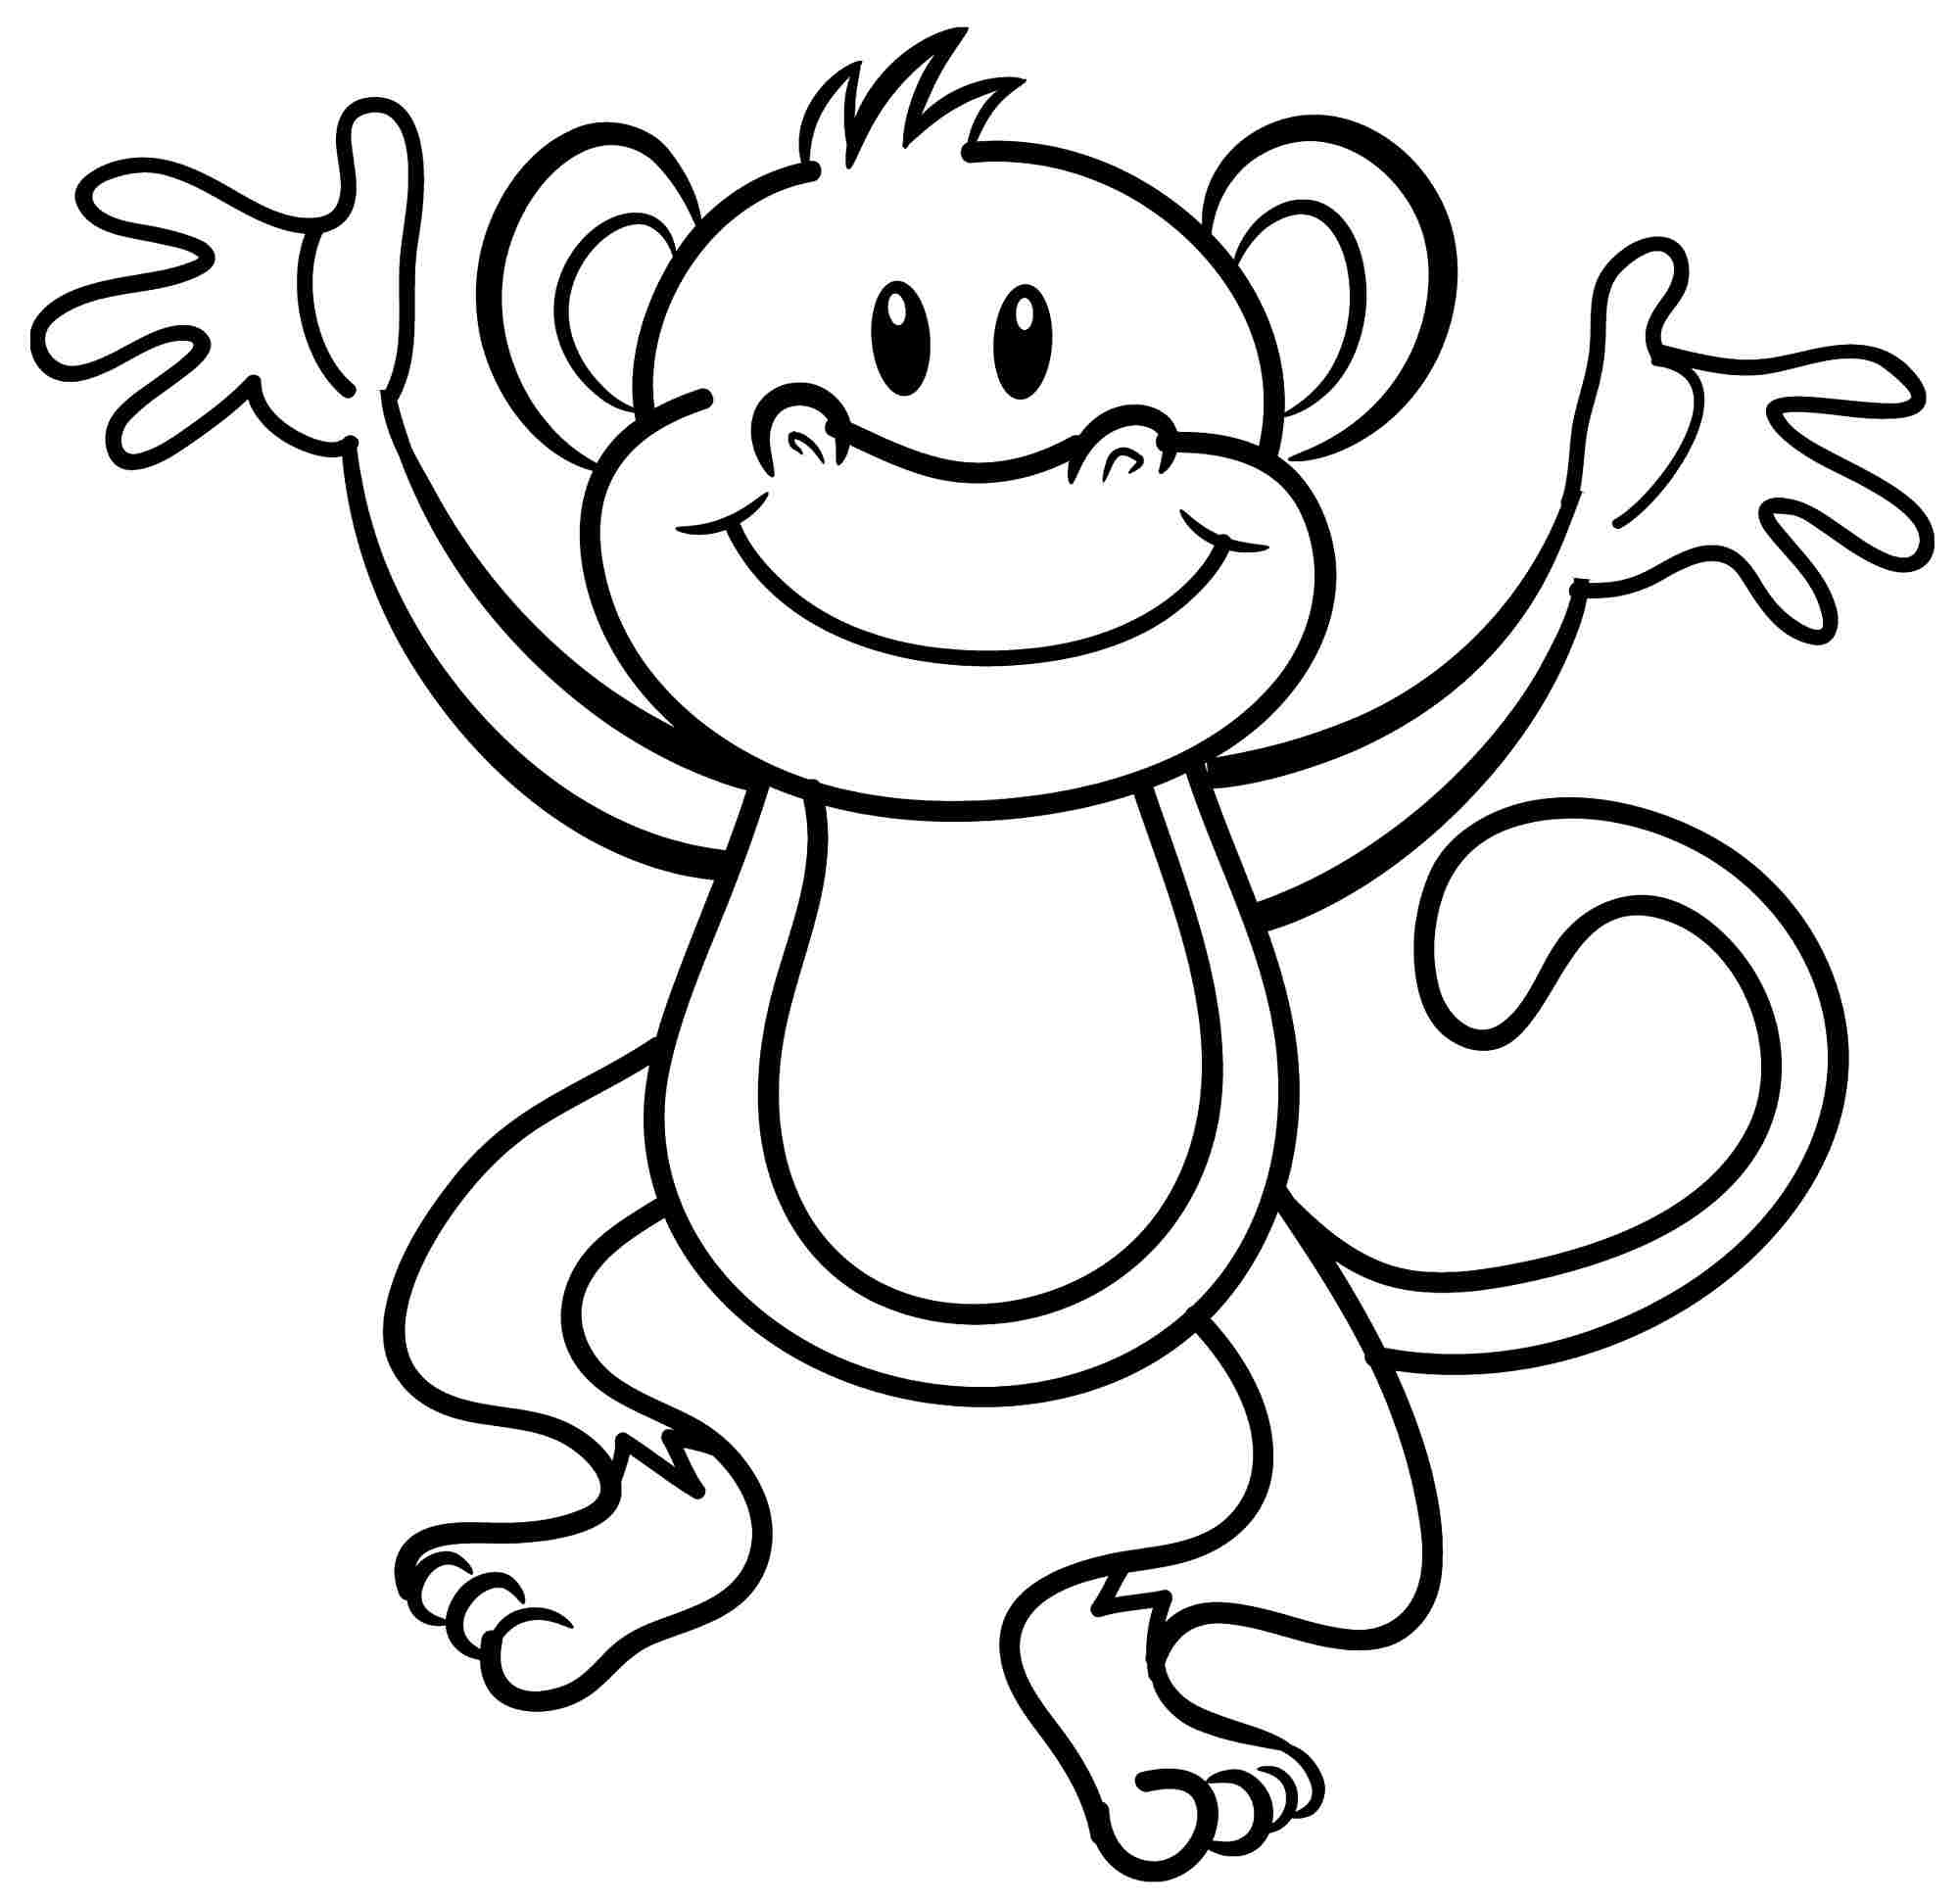 monkey clipart coloring monkey coloring pages monkey clipart panda free clipart coloring monkey